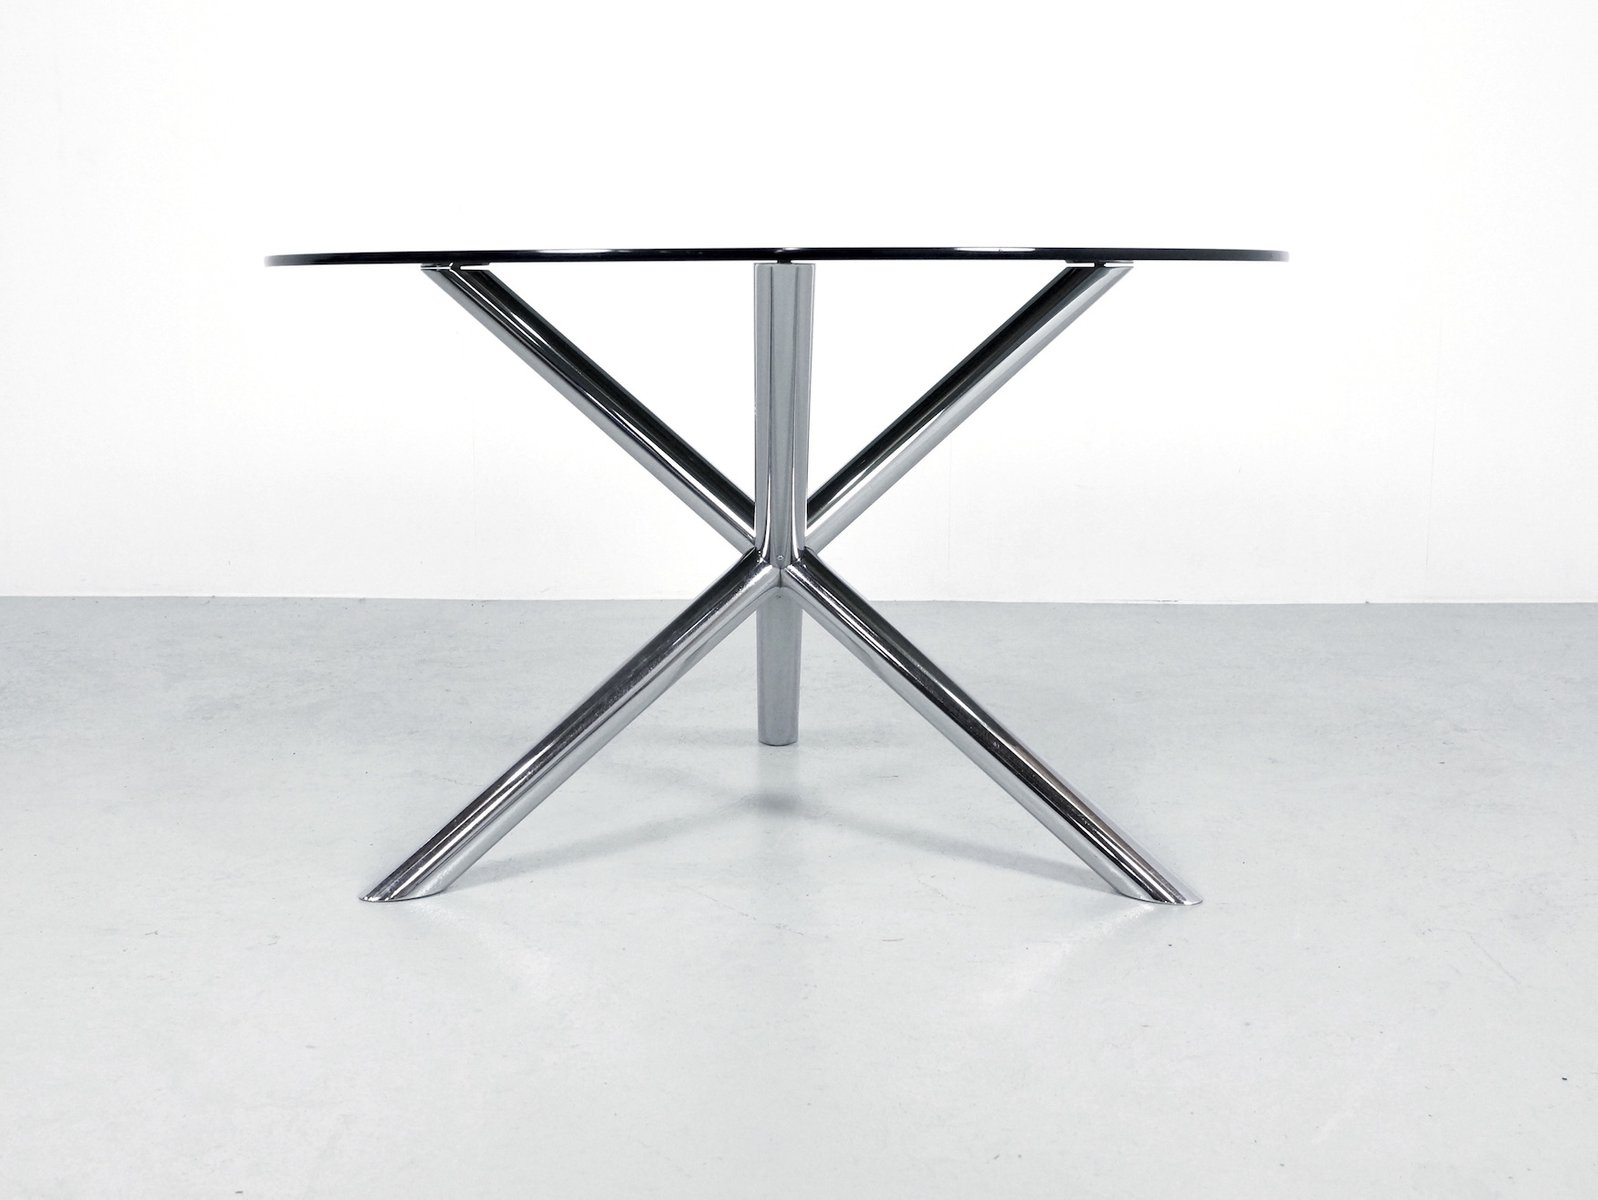 Table de salon en chrome et en verre fum par roche bobois - Table de salon en verre roche bobois ...